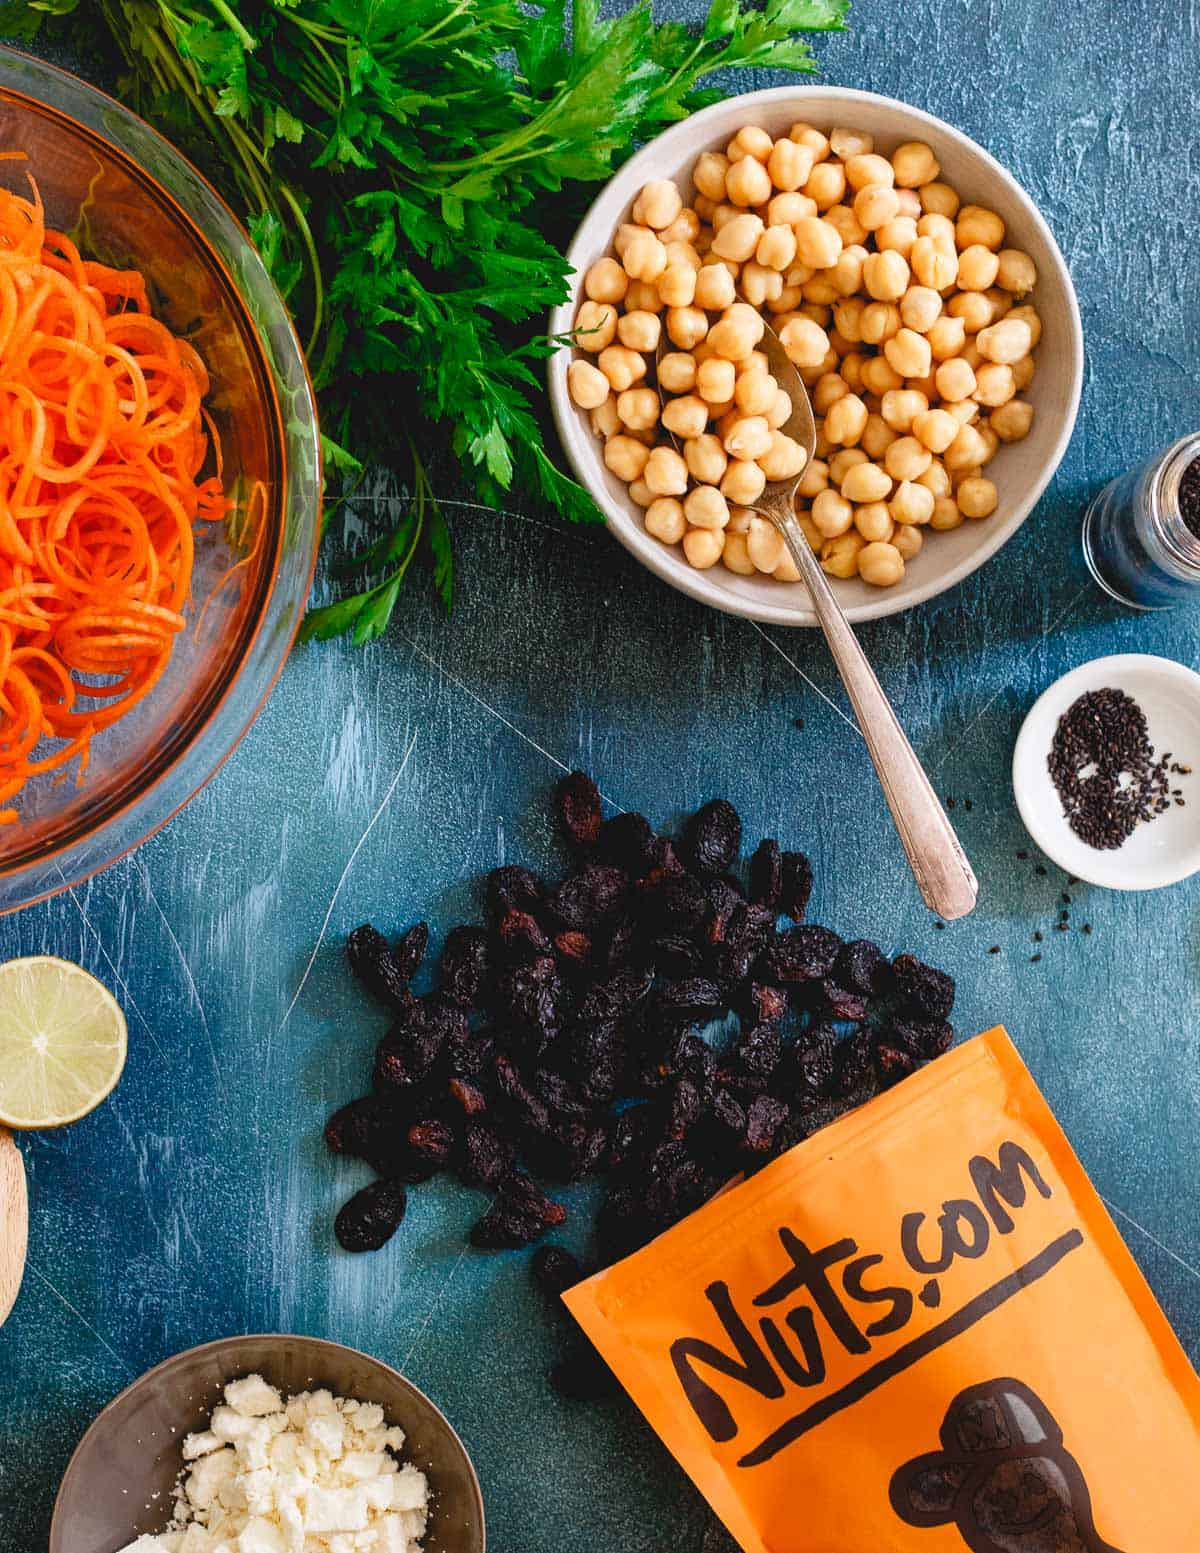 Royal raisins are a plump, juicy and deliciously sweet addition to this mediterranean carrot salad.